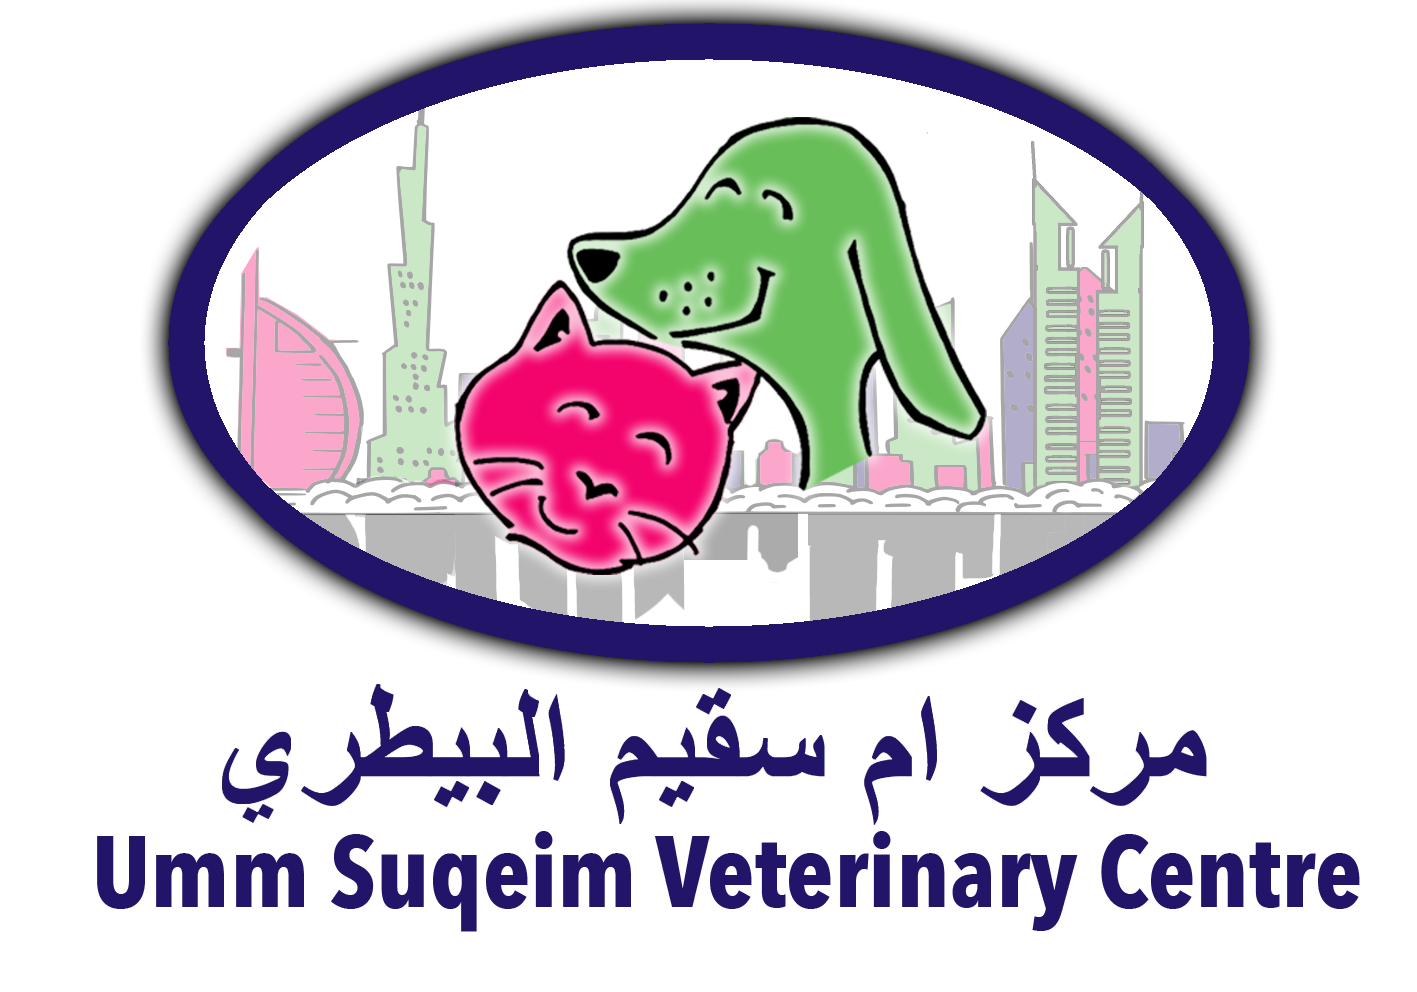 Umm Suqeim Veterinary Centre